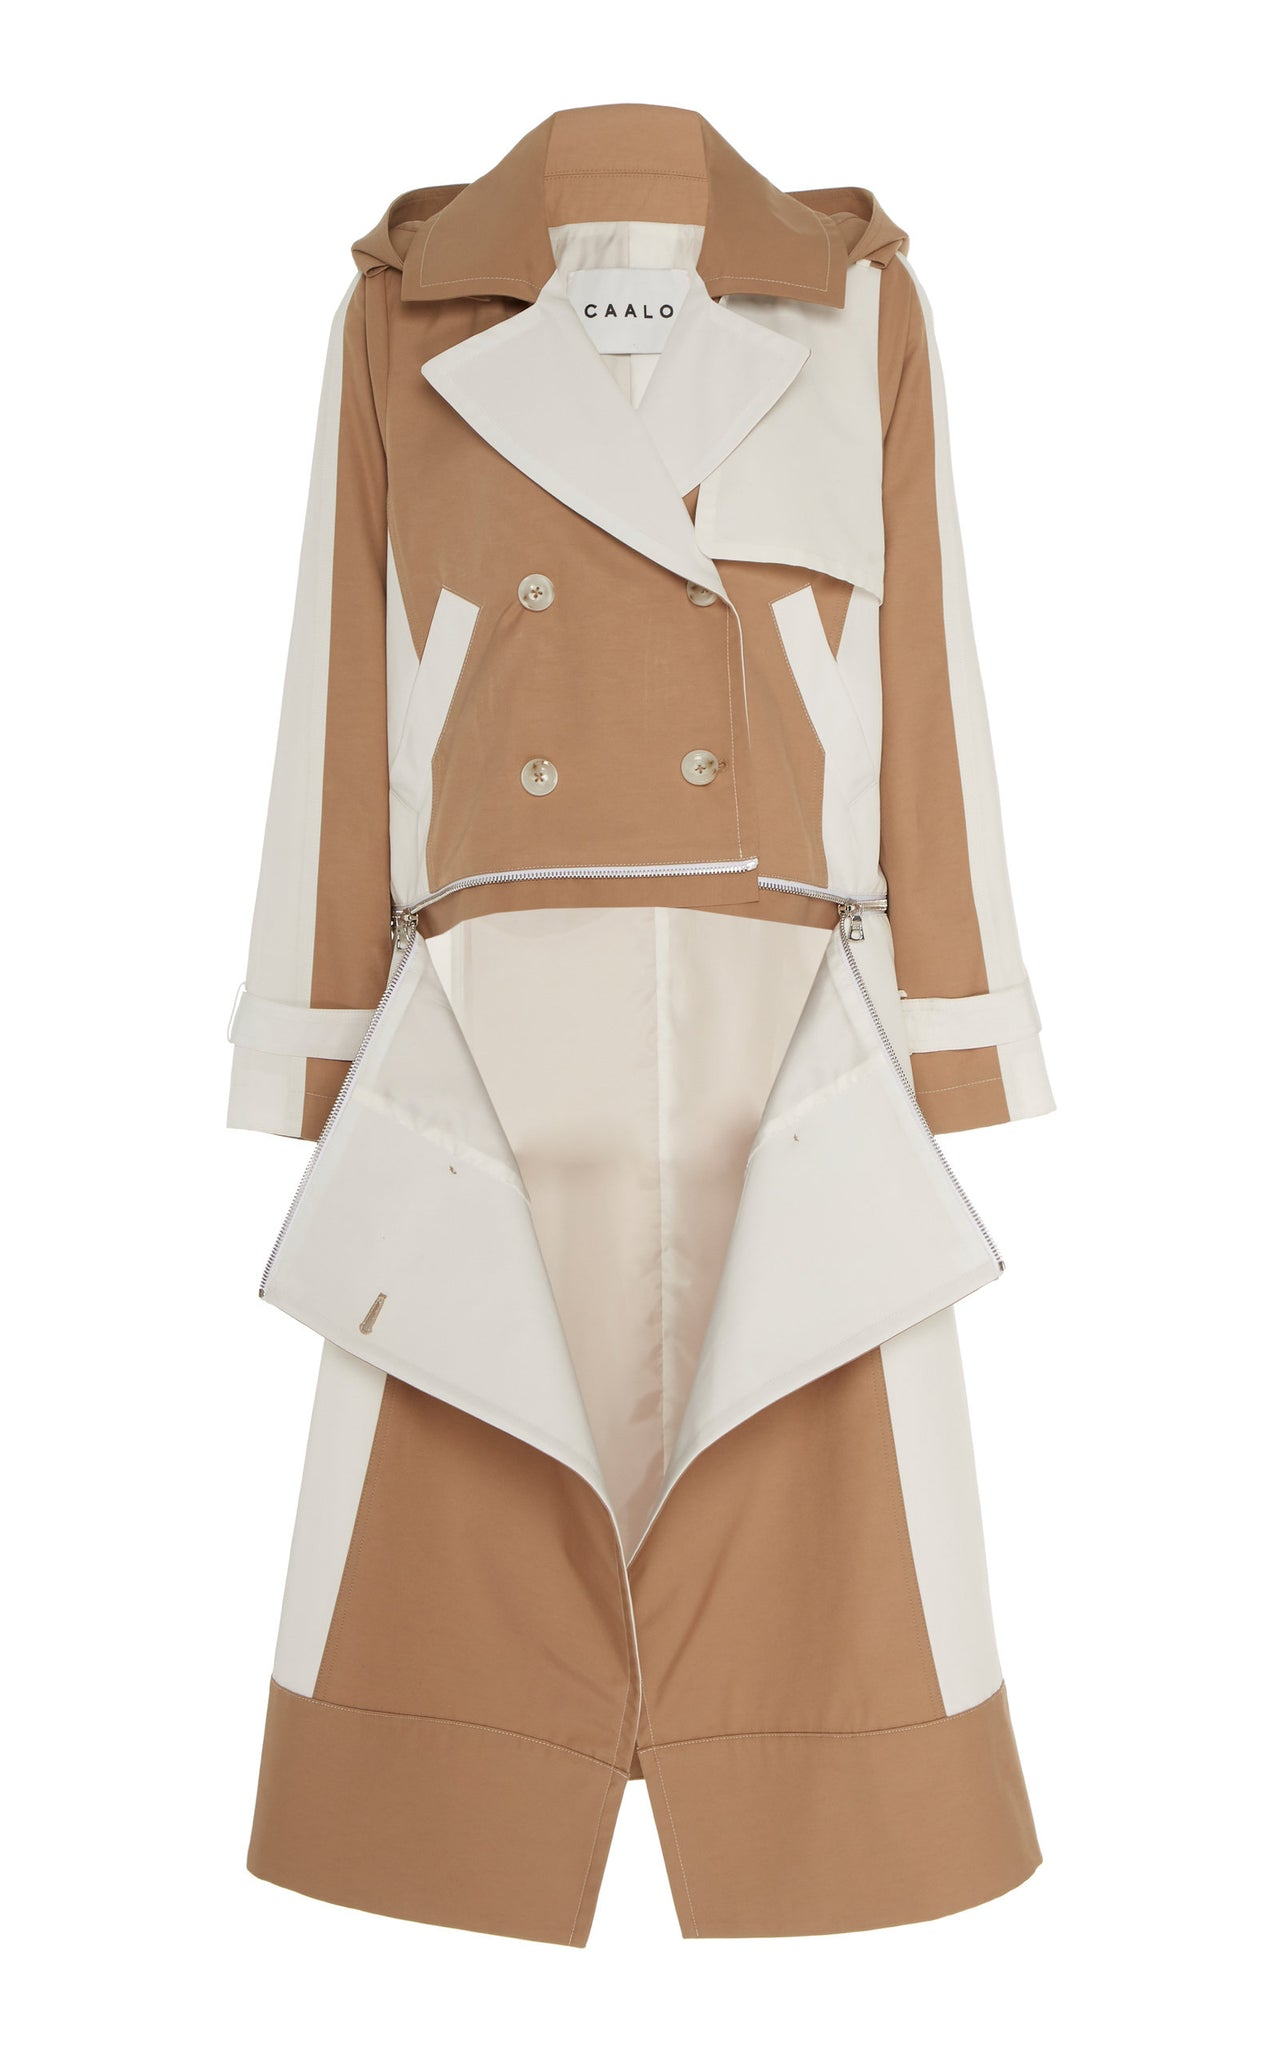 CAMEL / WHITE CONVERTIBLE HOODED TRENCH